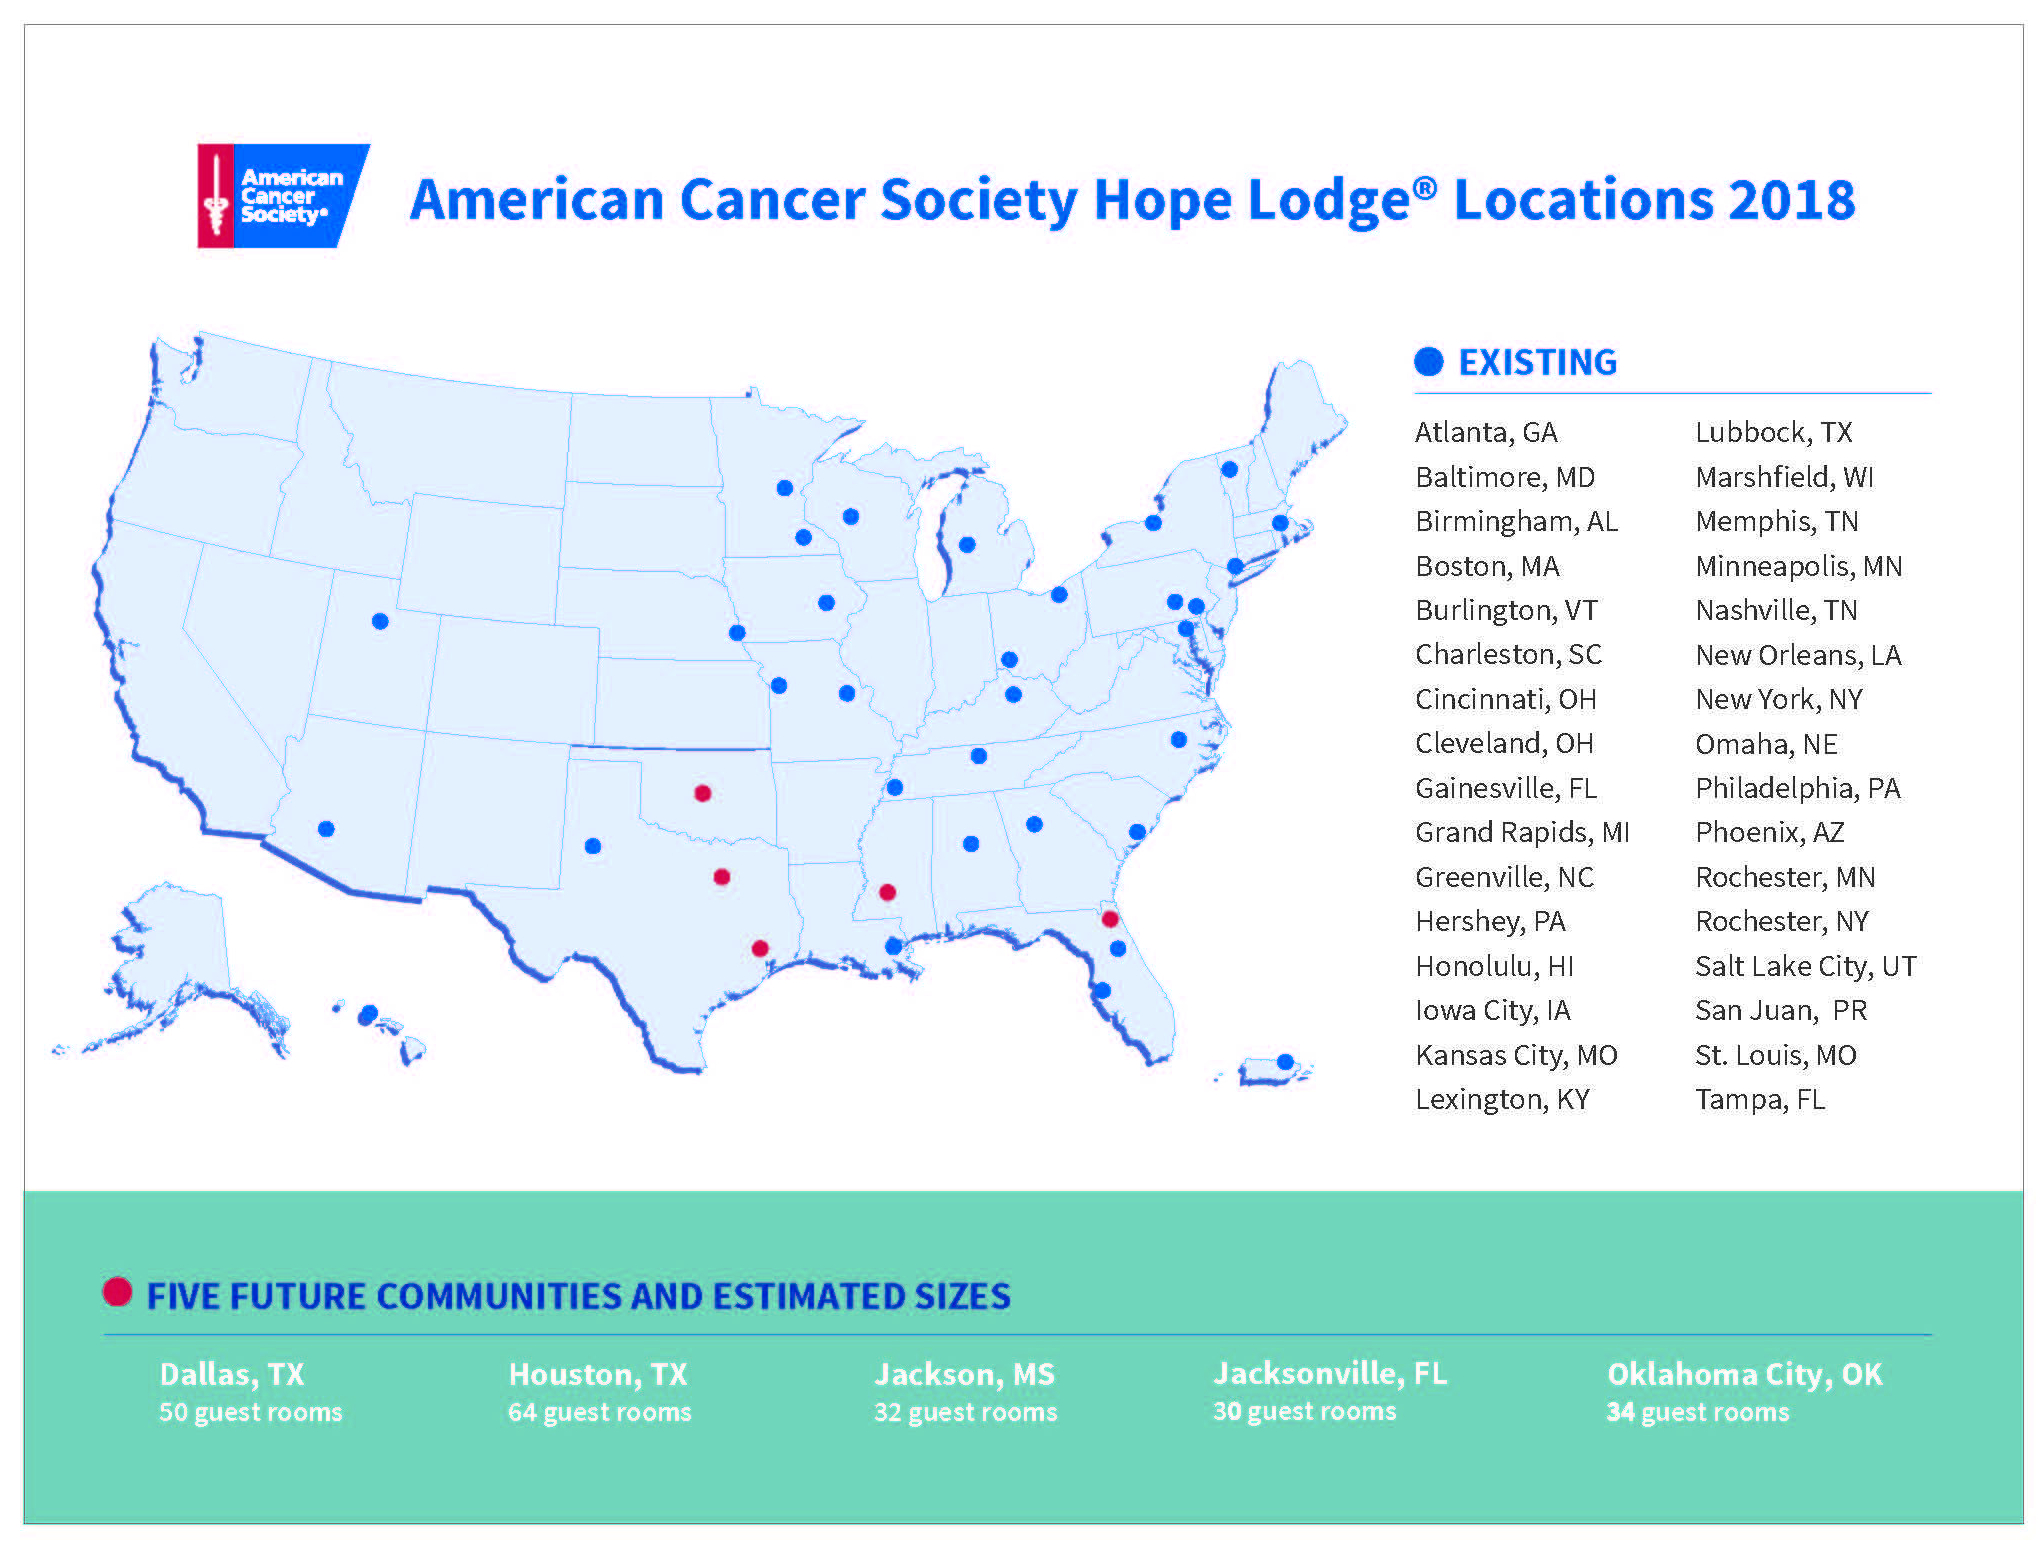 American Cancer Society Hope Lodge Locations